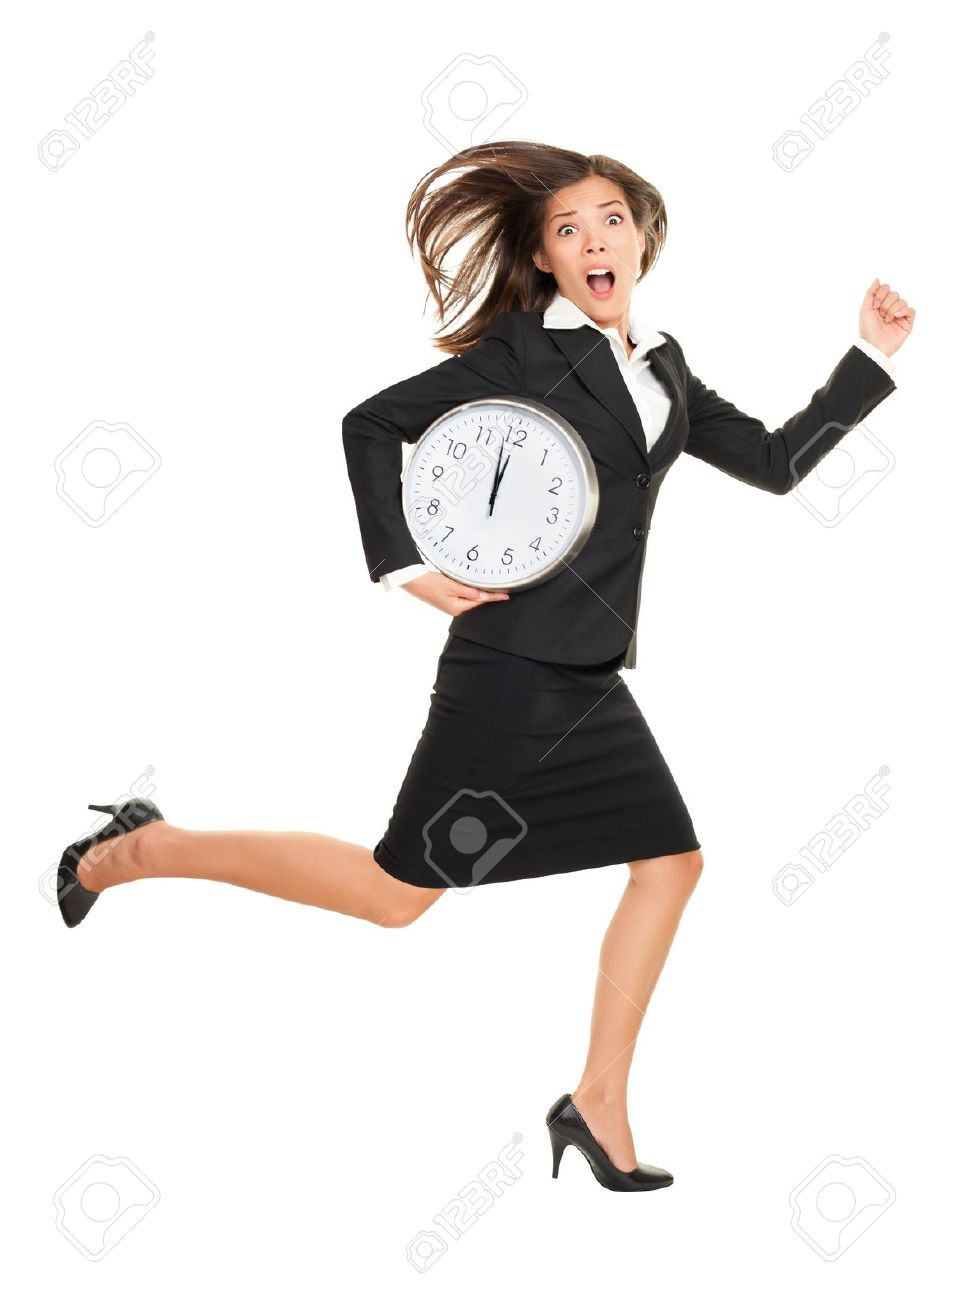 Stress - business woman running late with clock under her arm. Business concept photo with young businesswoman in a hurry running against time. Caucasian / Chinese Asian isolated on white background in full length. Stock Photo - 12288404